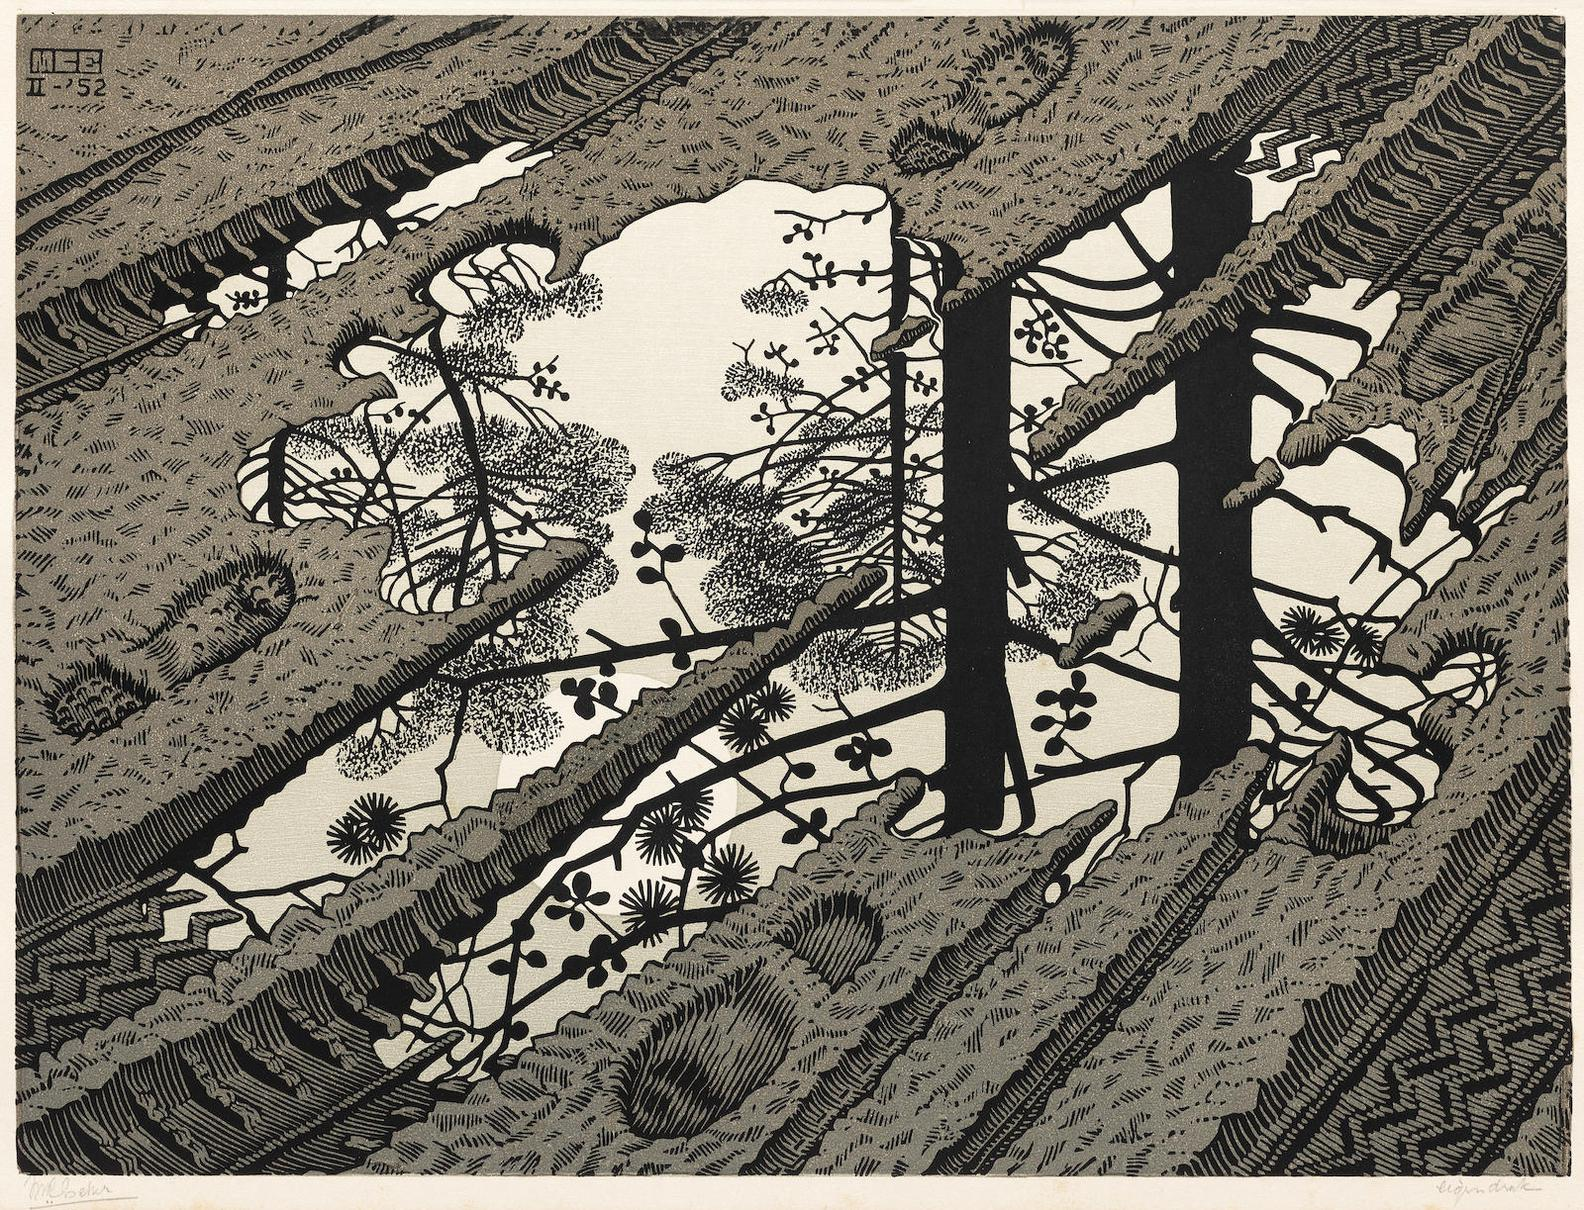 MC Escher,  Puddle , 1952. Woodcut.